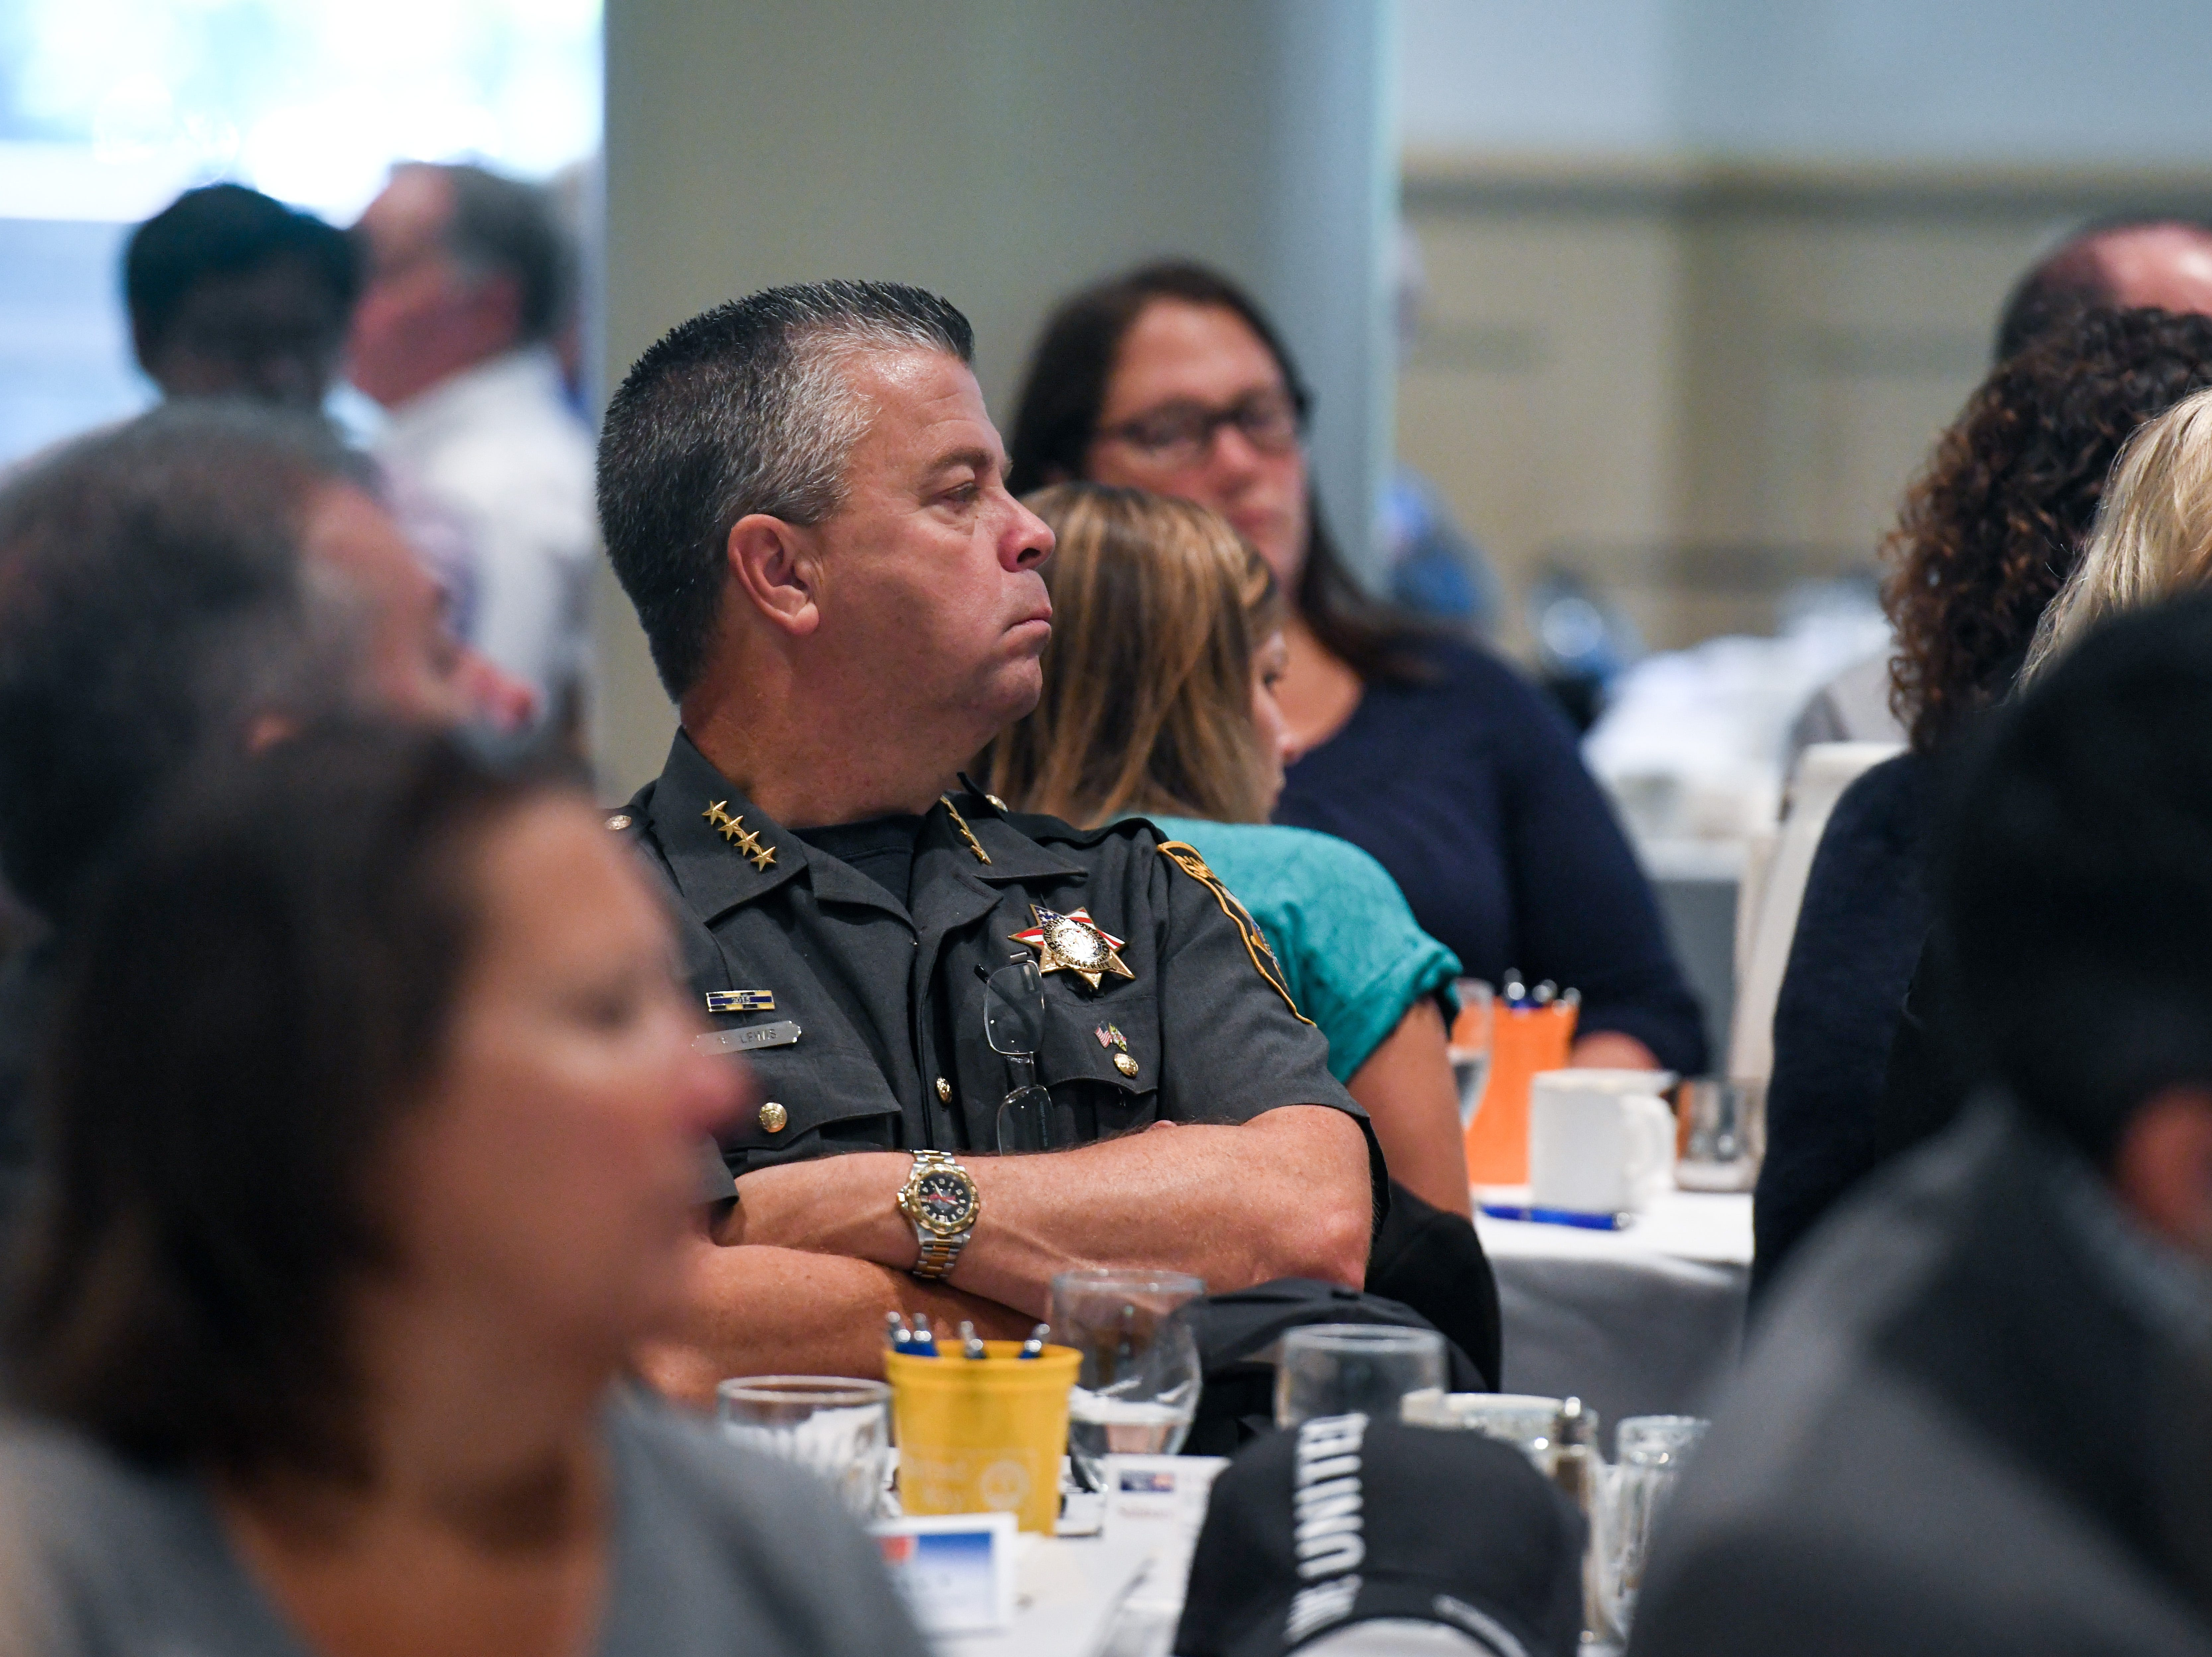 Wicomico County Sheriff Mike Lewis watches a speech at the United Way campaign kick-off breakfast at Salisbury University on Friday, Sept 21, 2018.